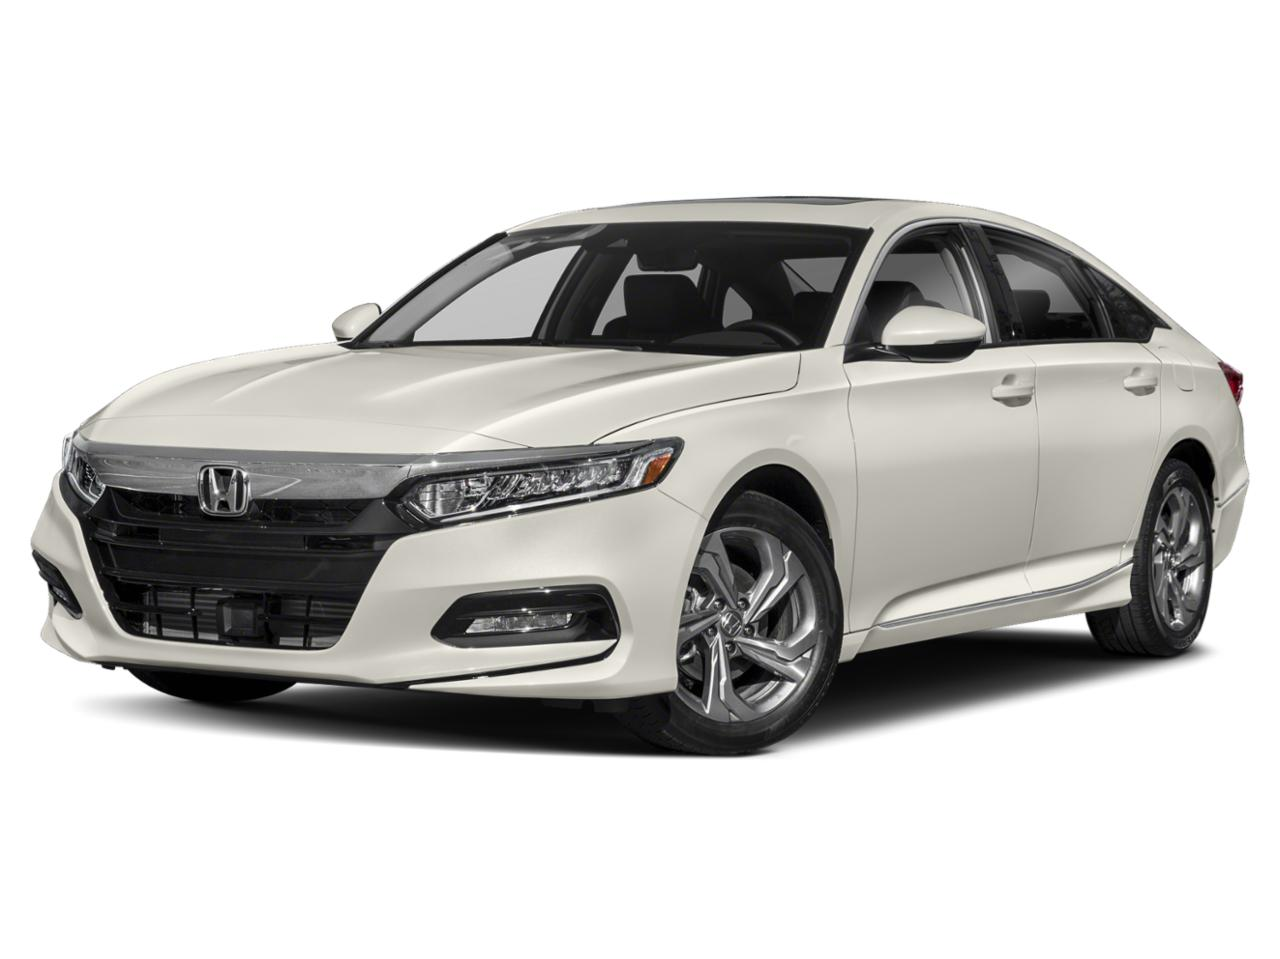 2018 Honda Accord Sedan Vehicle Photo in Owensboro, KY 42303